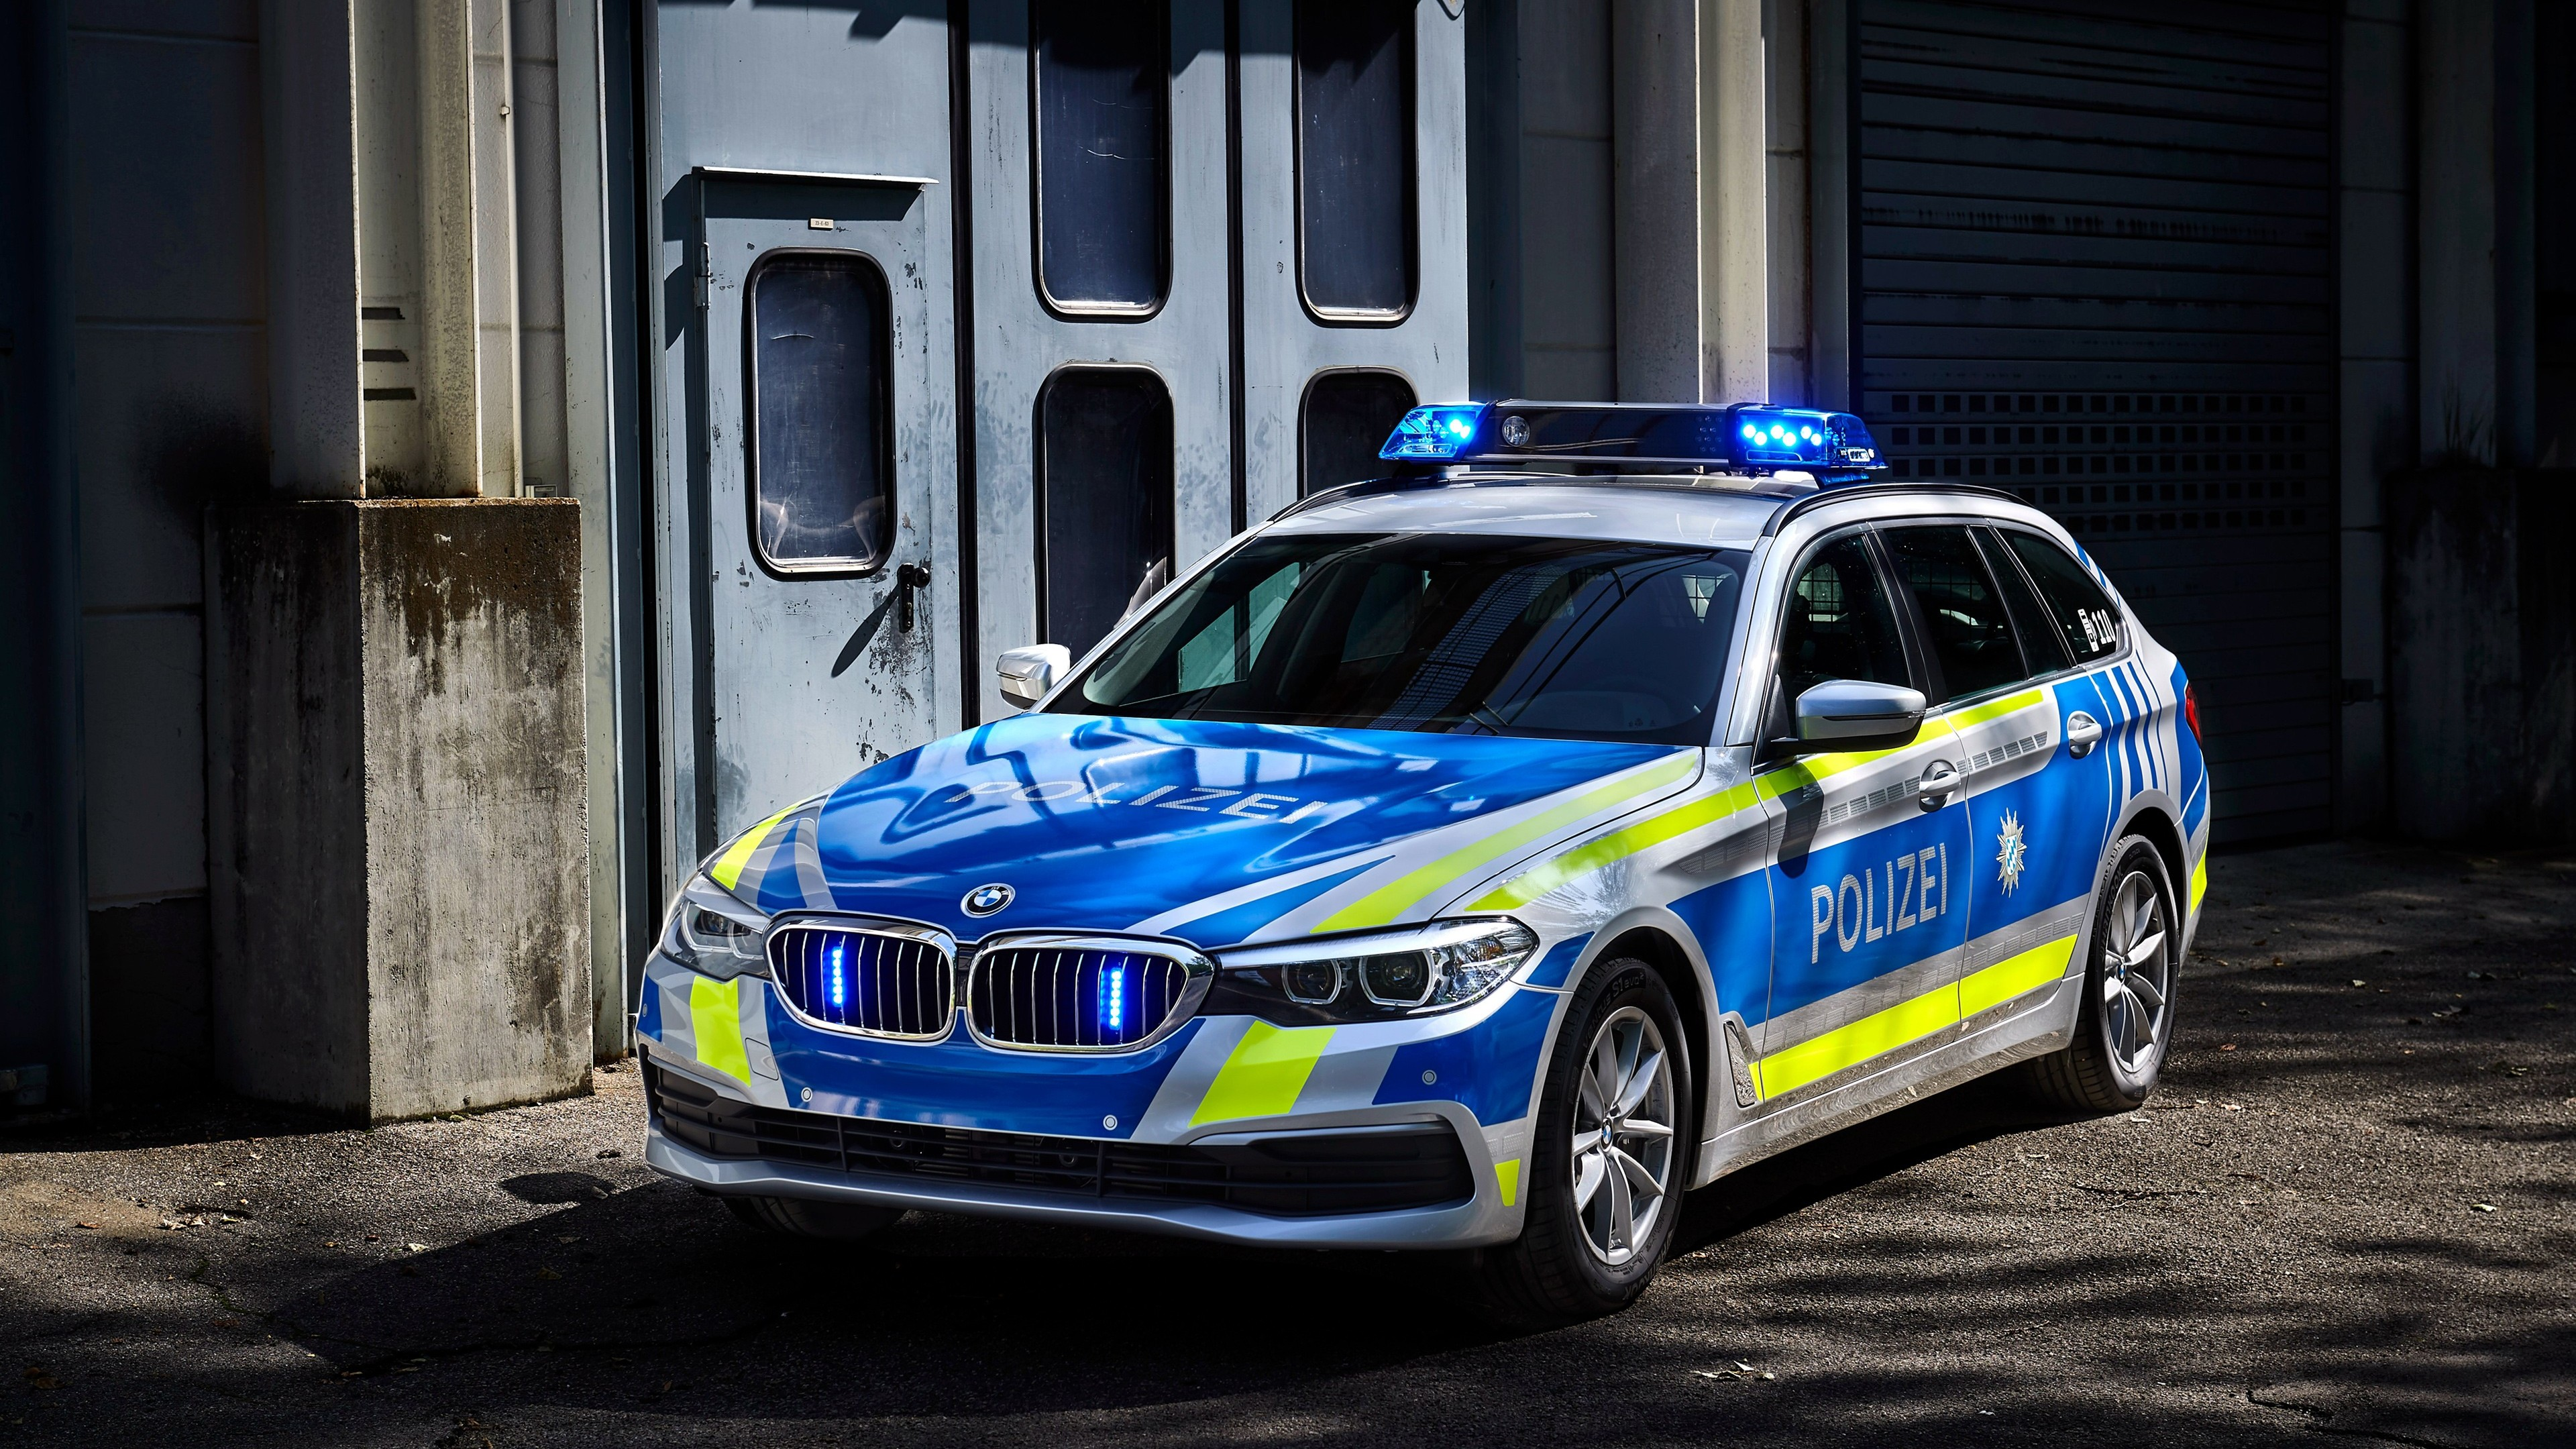 Wallpaper Bmw 530d Xdrive Police Cars 2017 4k Cars